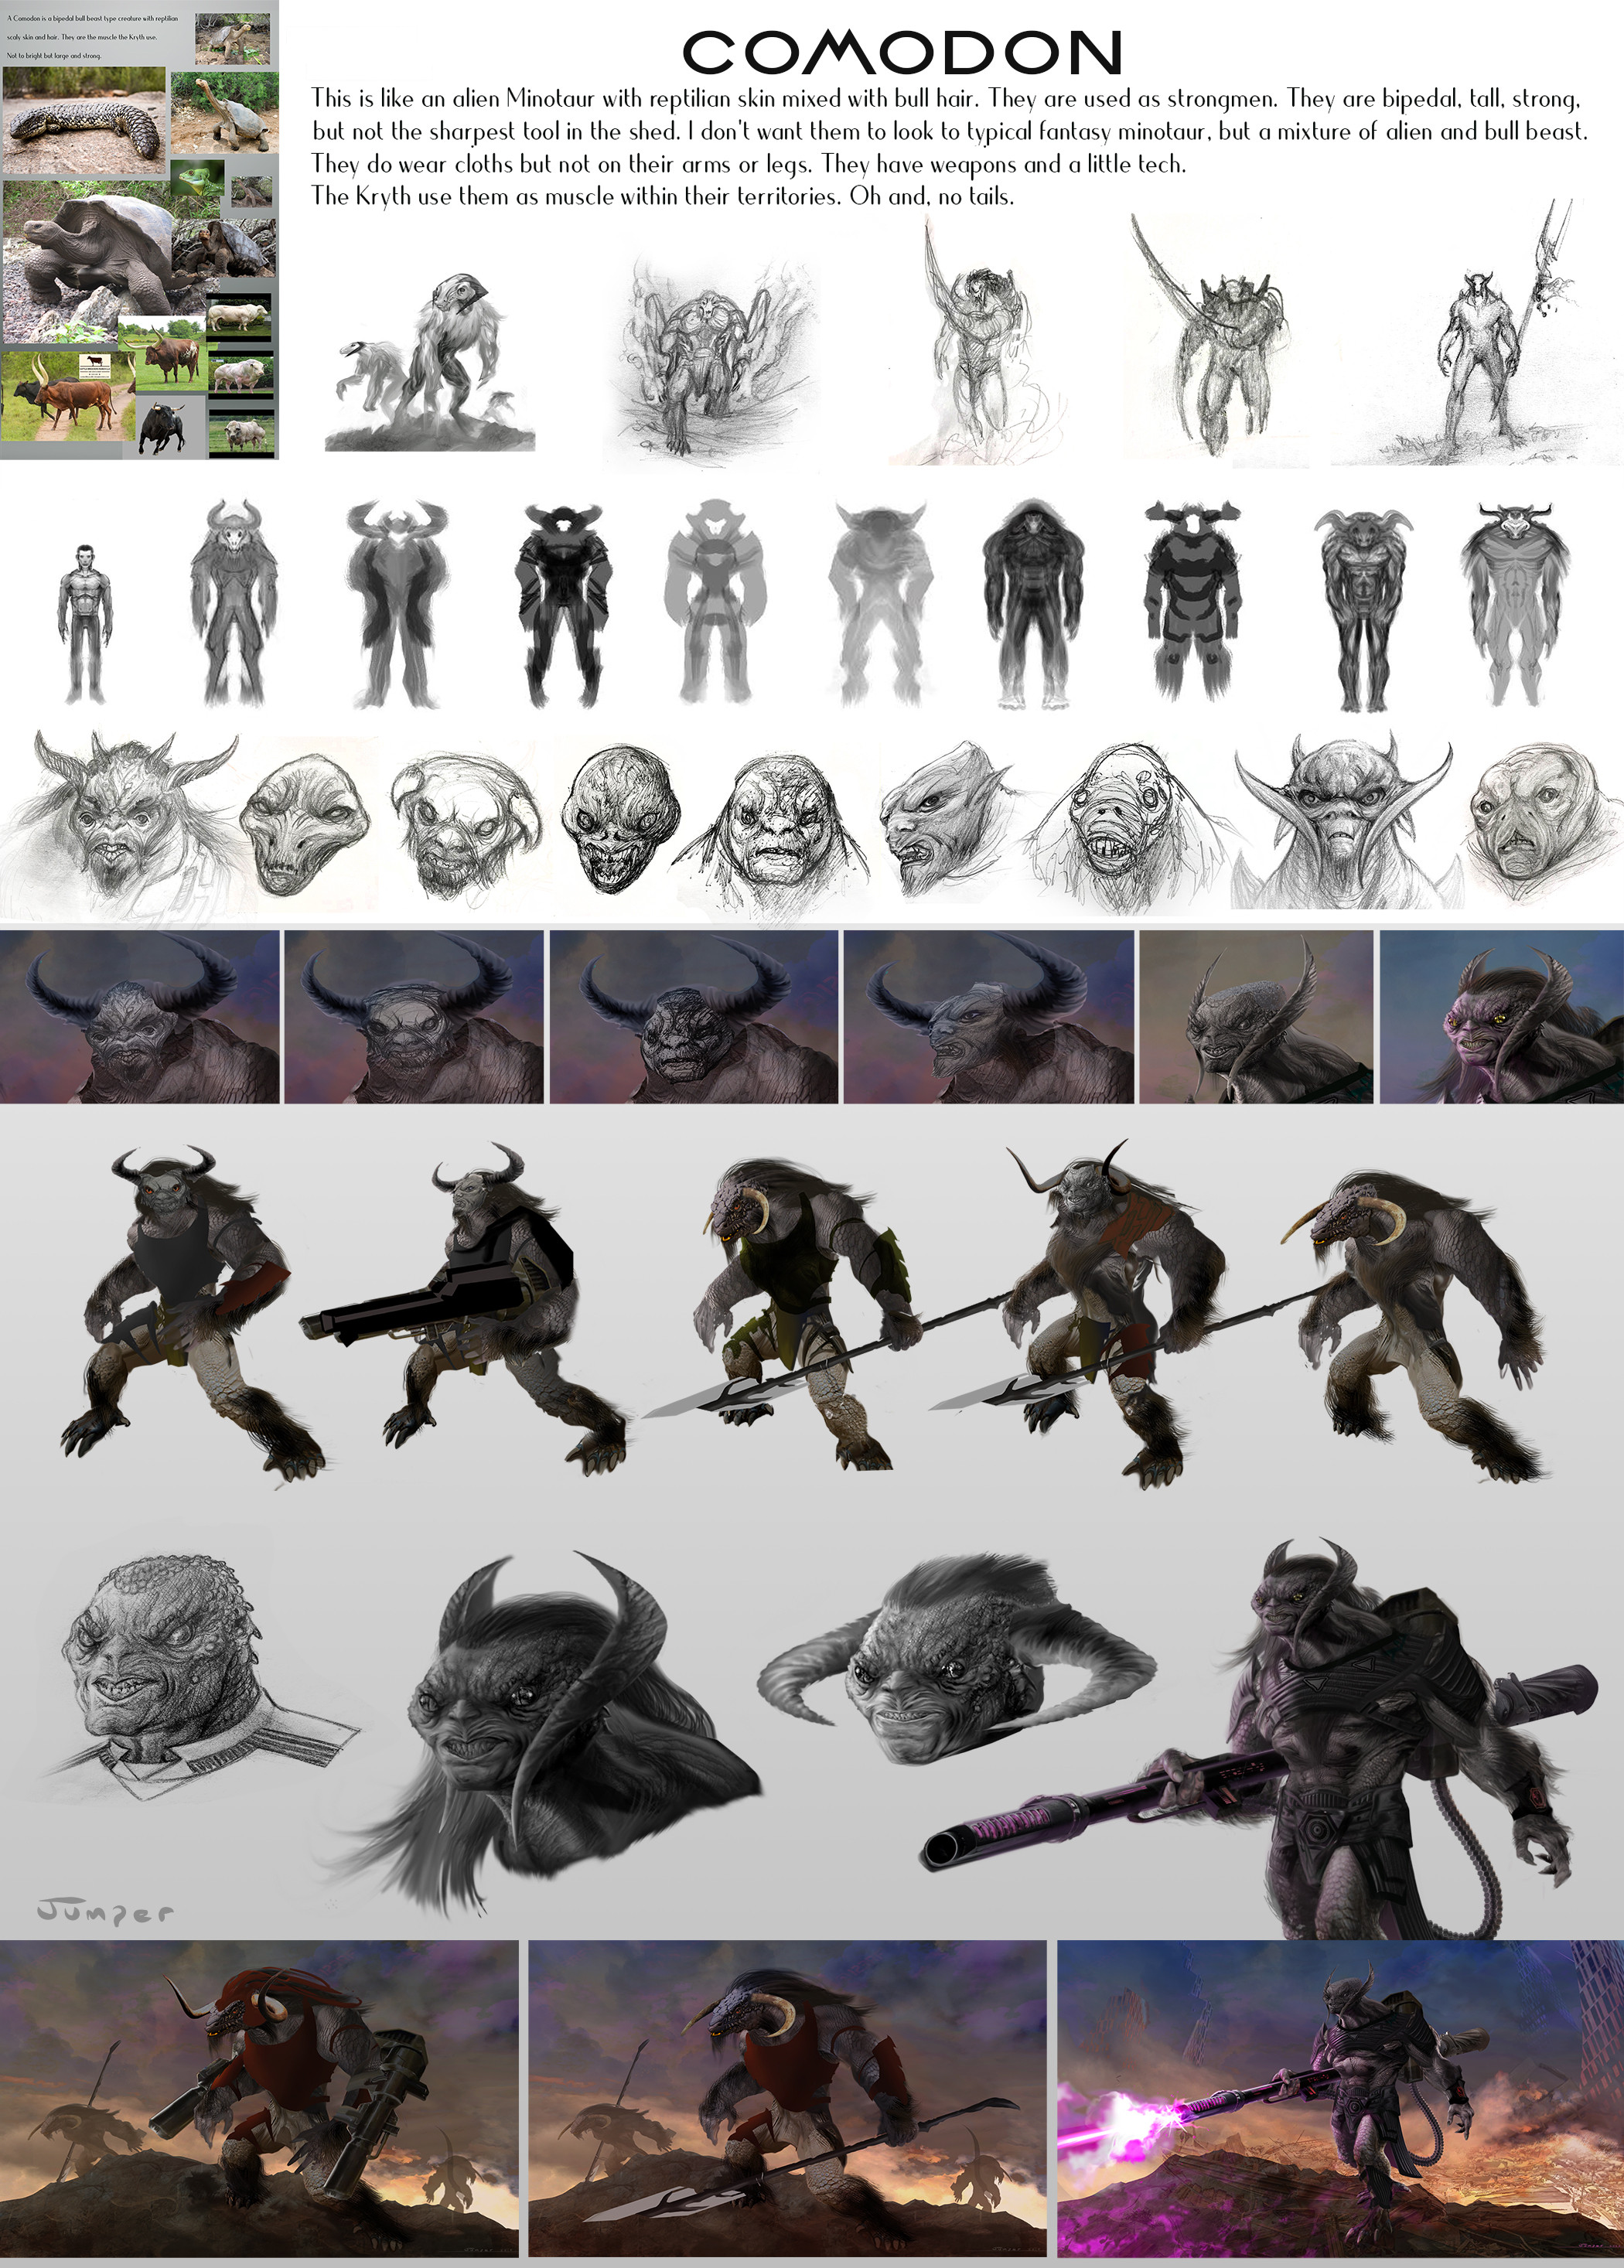 Comodon concepts and ideas.